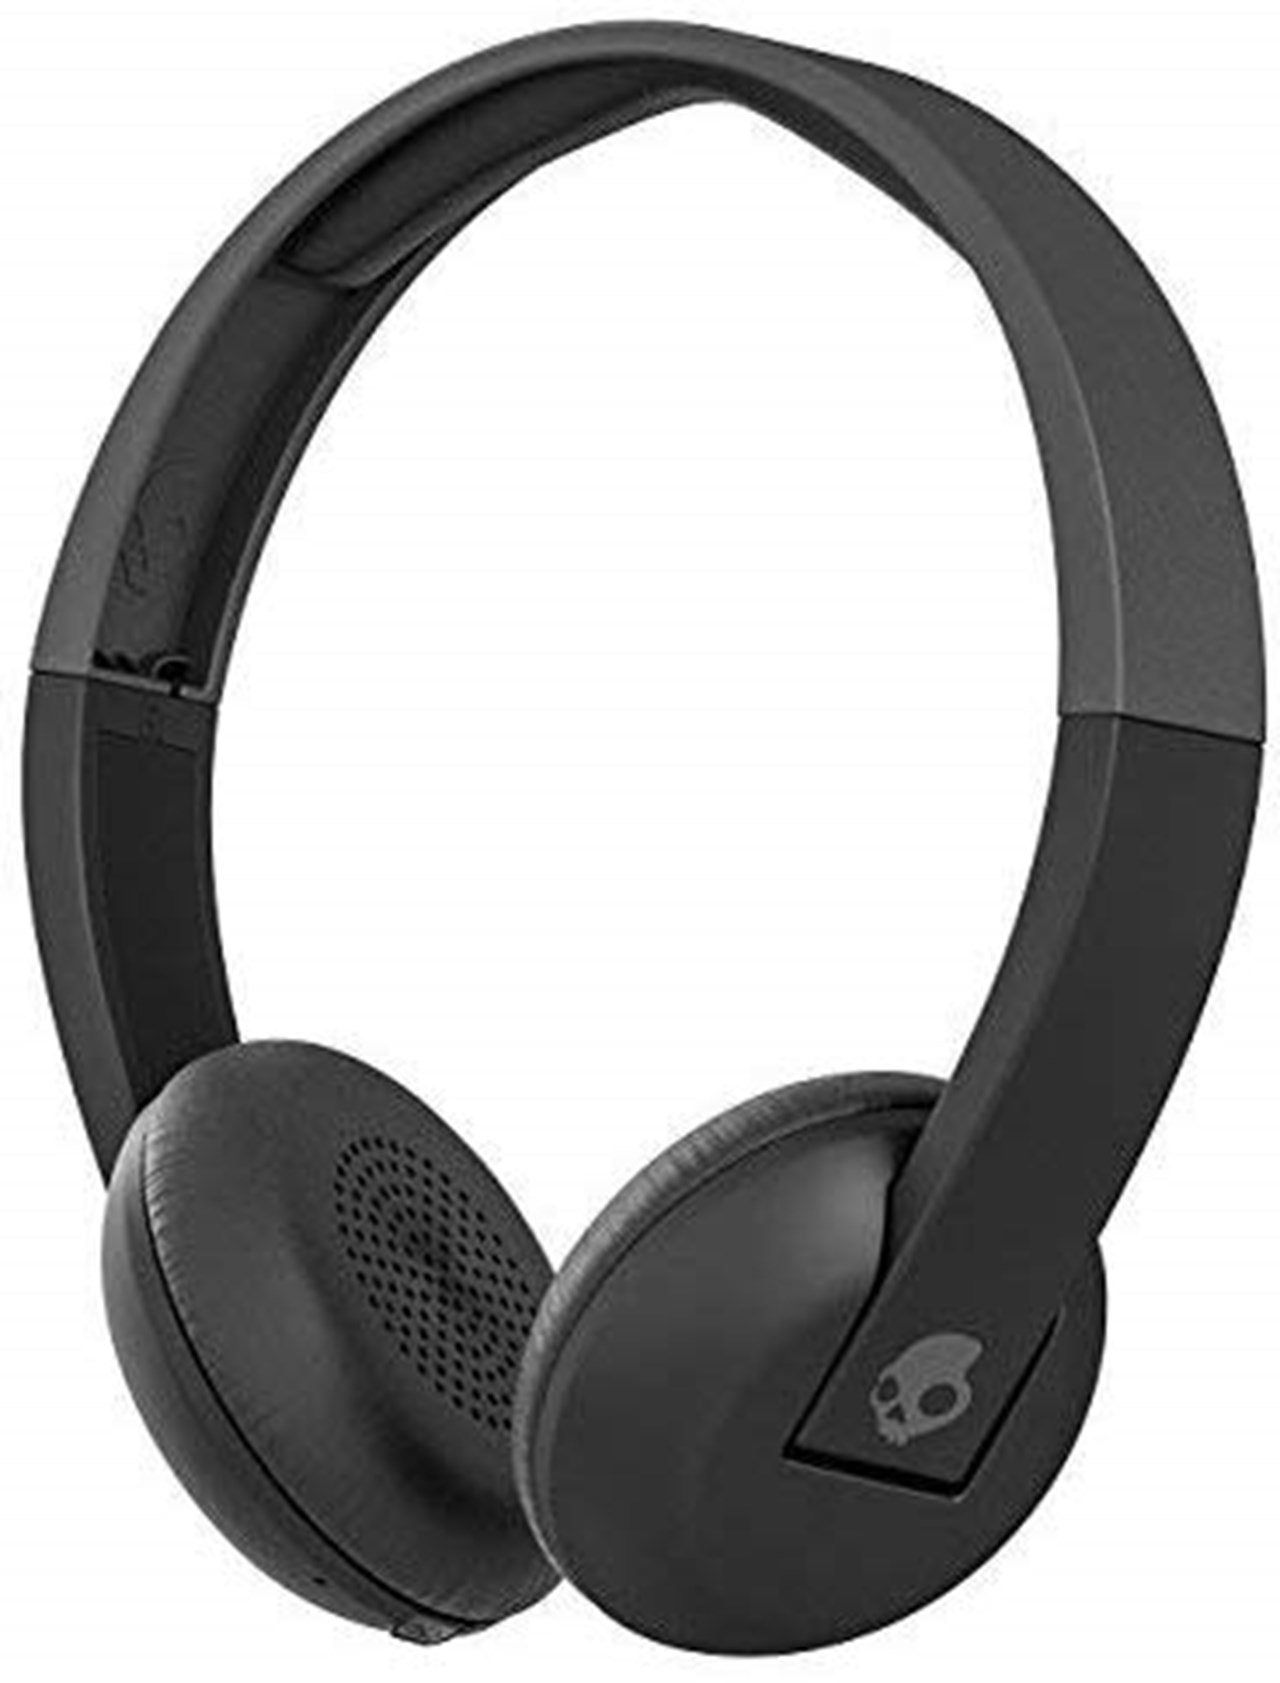 Skullcandy Uproar Black / Grey Bluetooth Headphones - 1